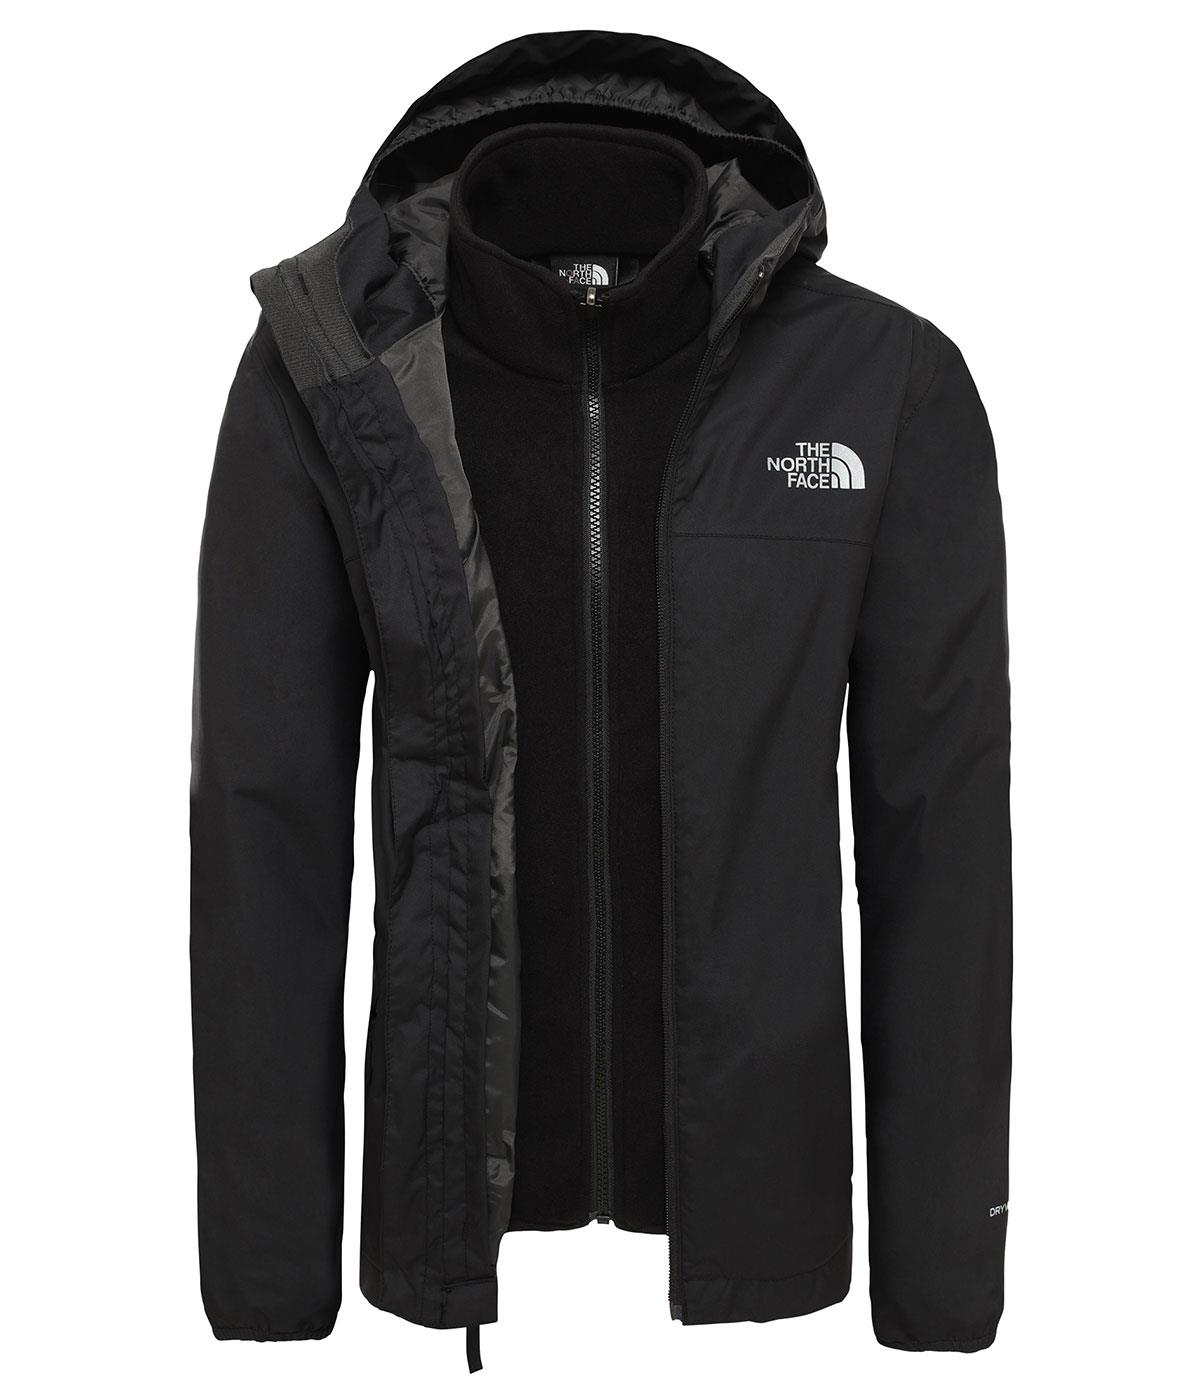 The North Face B EldenÇocuk  Rain Triceketnf0A3Yf3Jk31